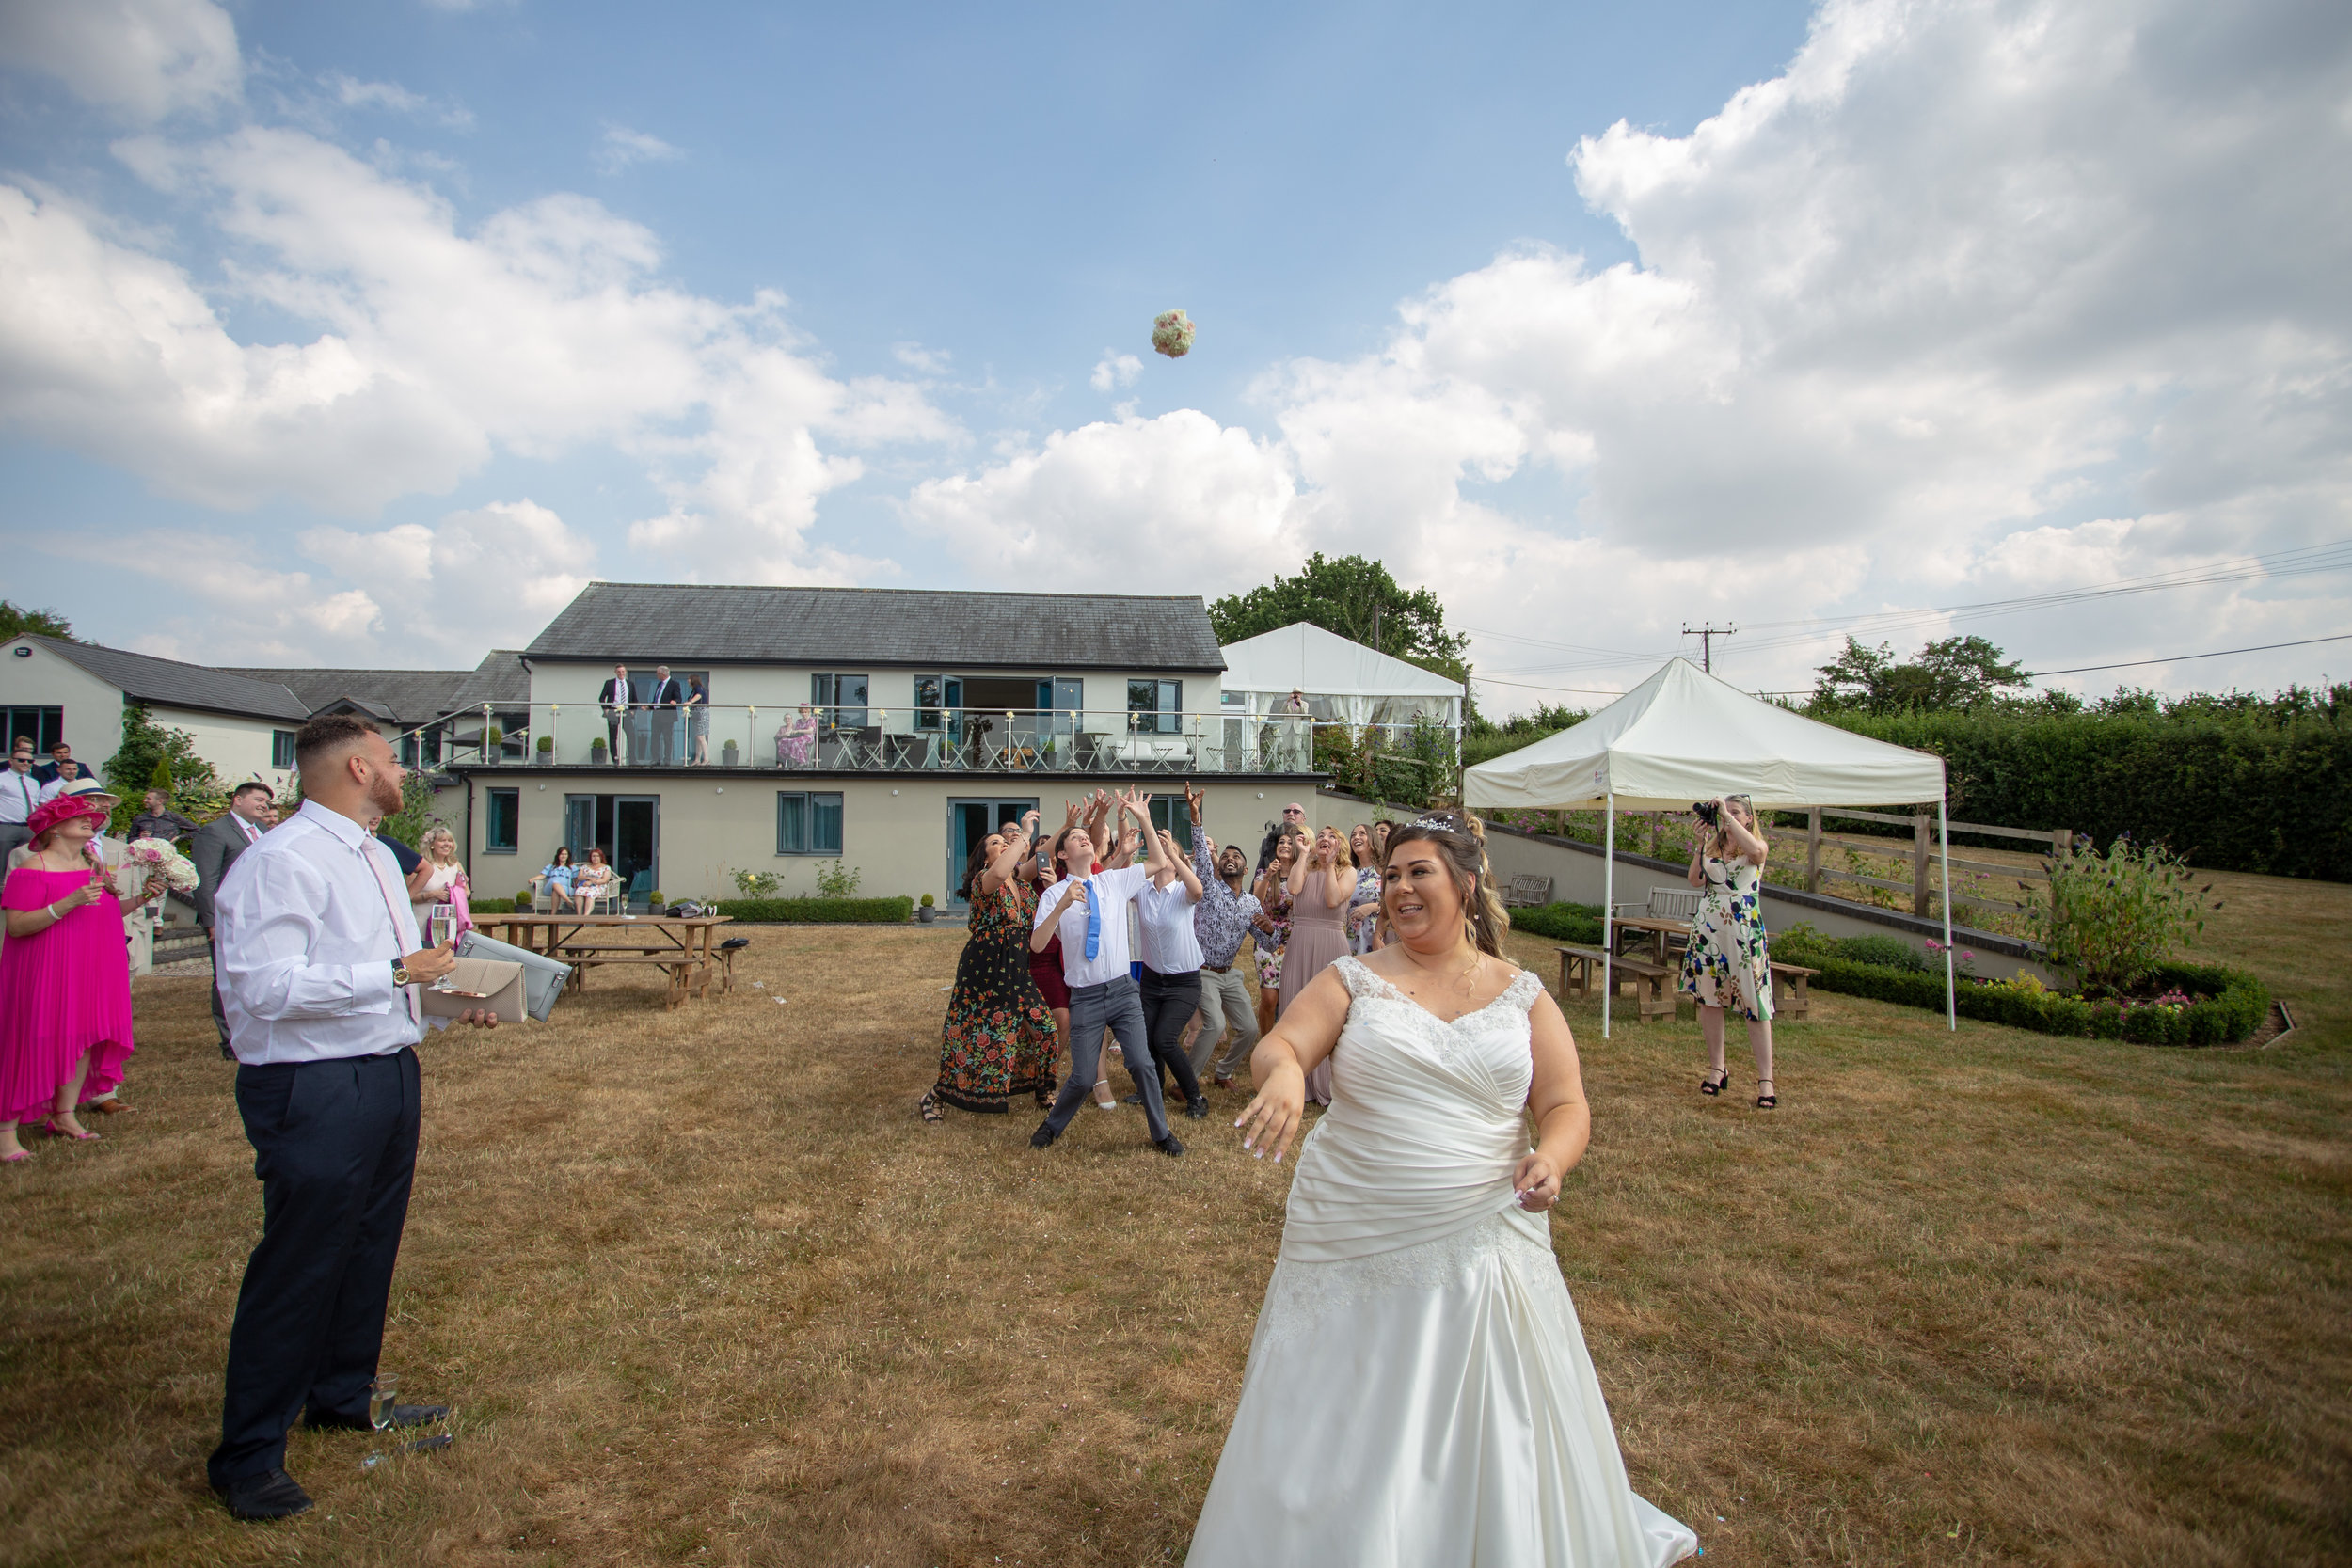 Sorcha throwing her flower bouquet in front of Manor Hill house, her guests were ready to catch it.